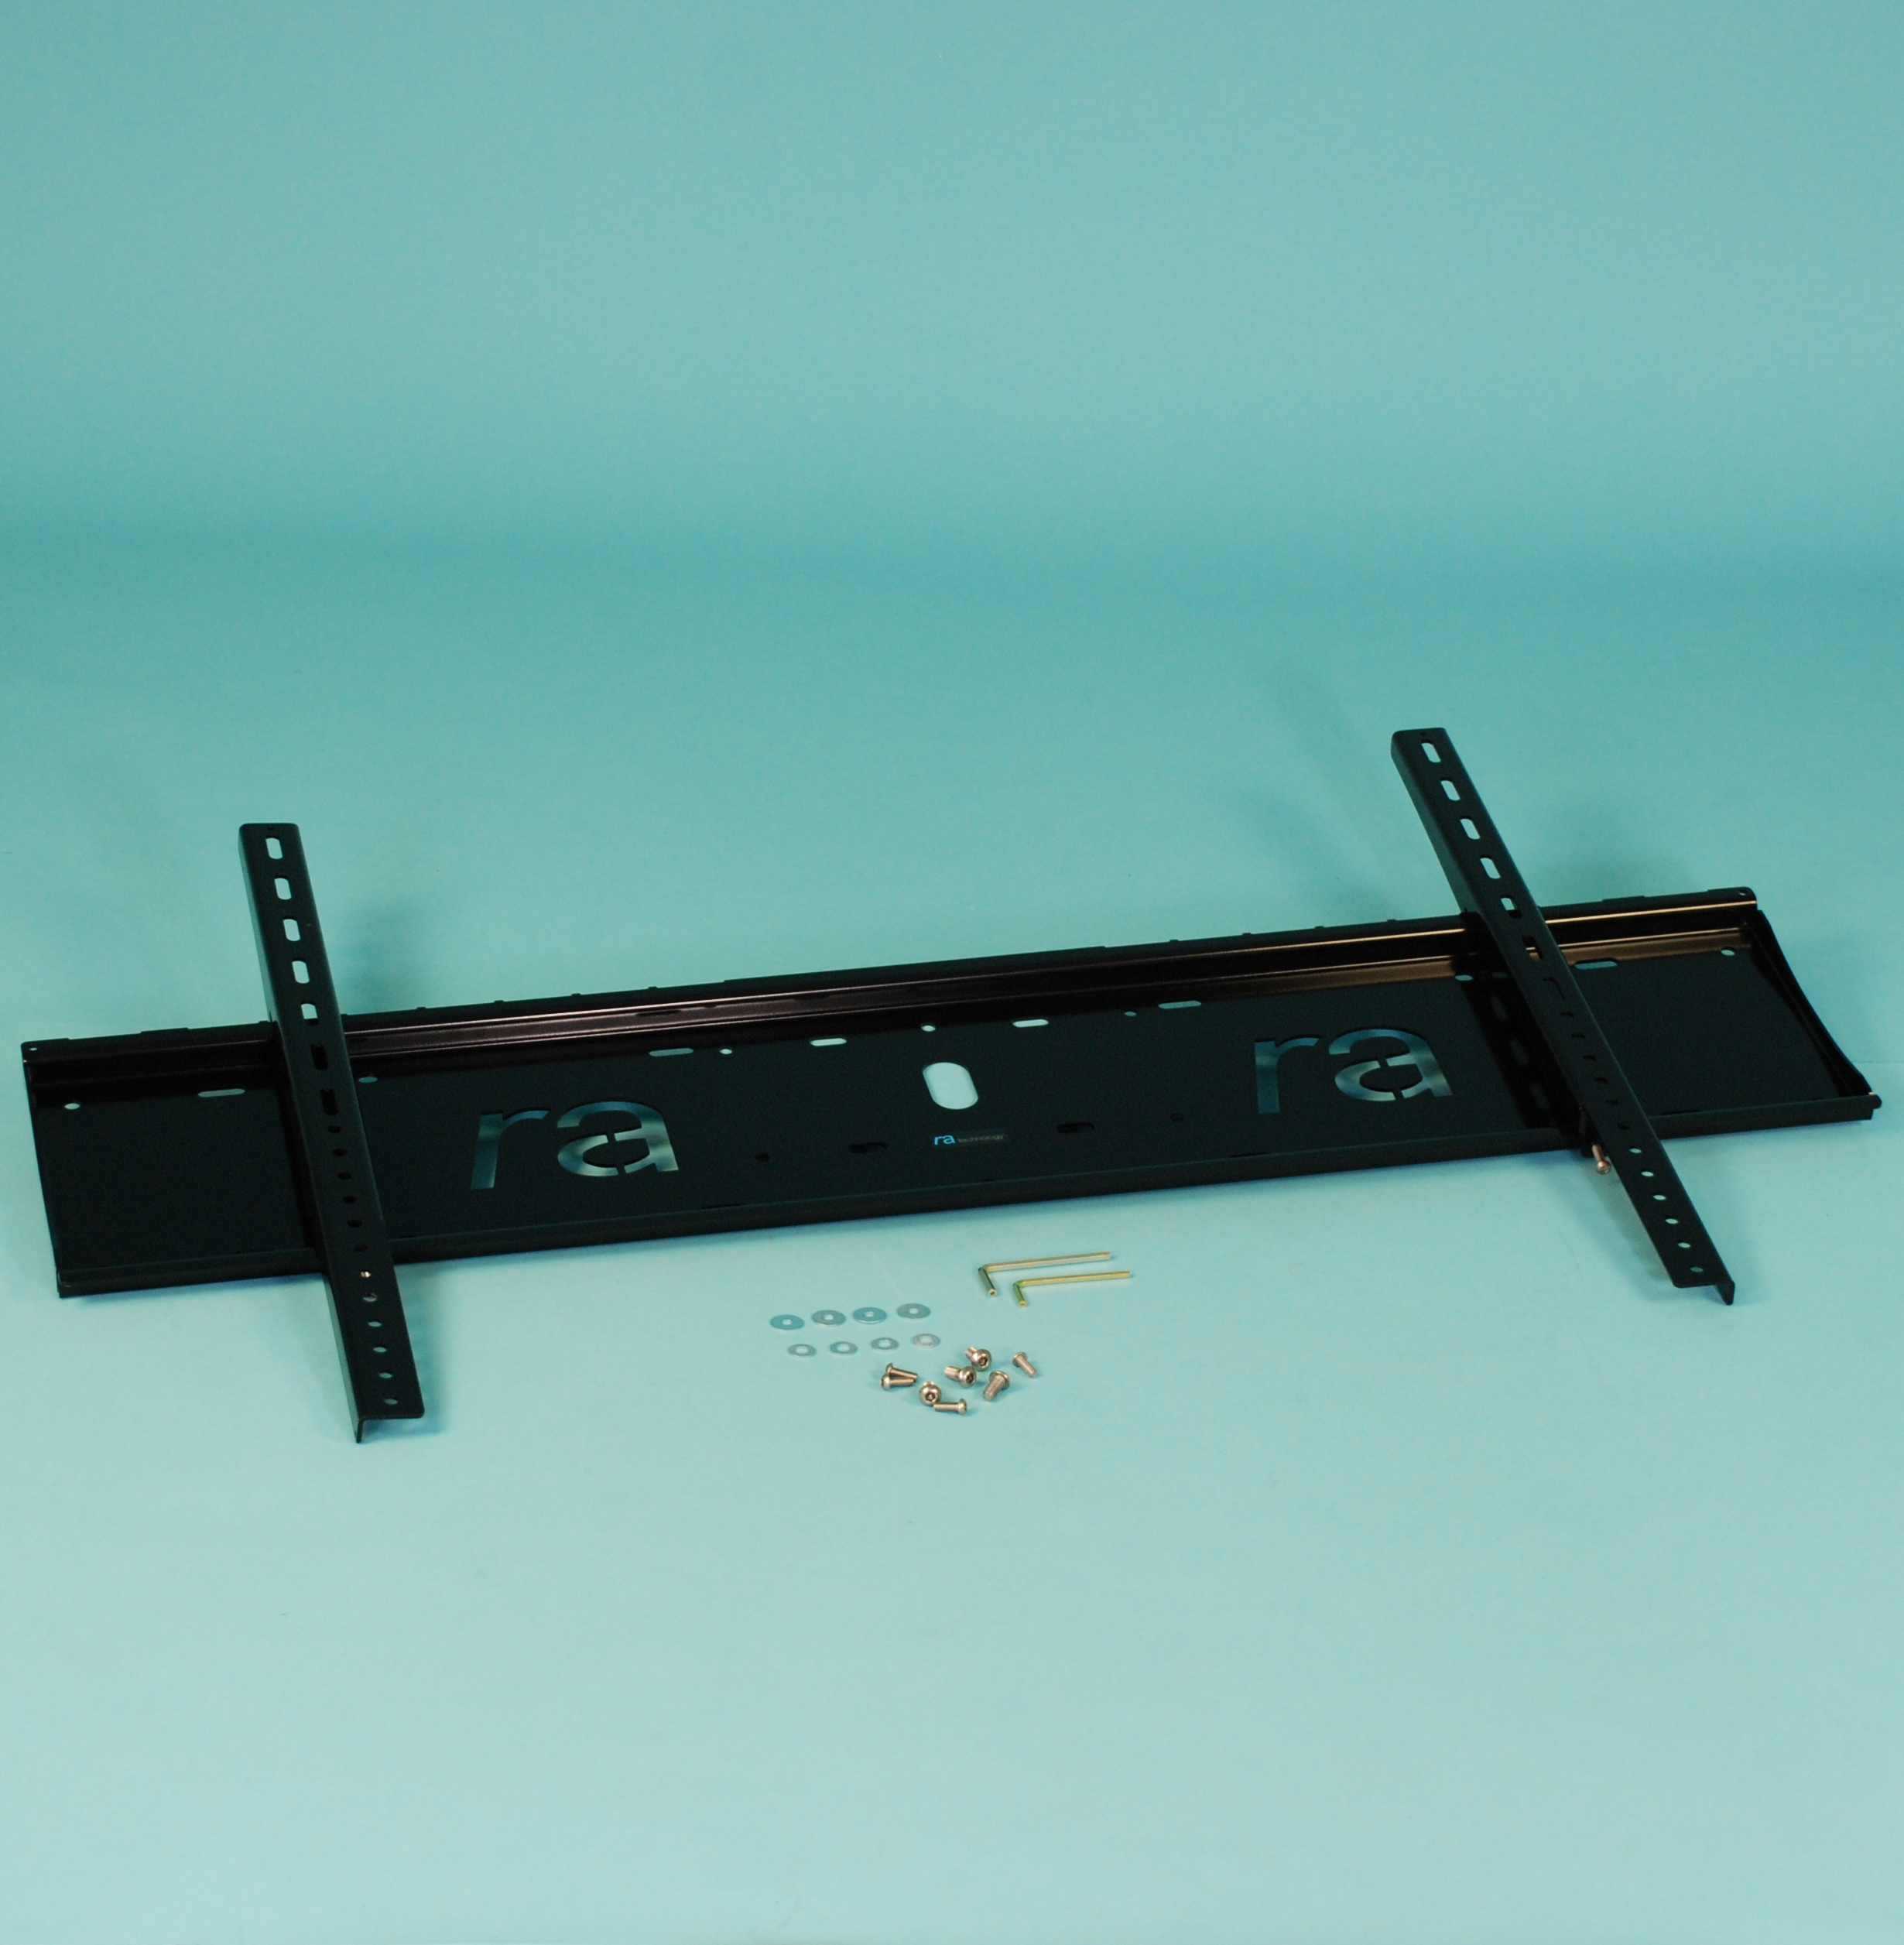 RA-114-LCD-HD Heavy Duty Flat Screen Mount. Screens upto 140kg